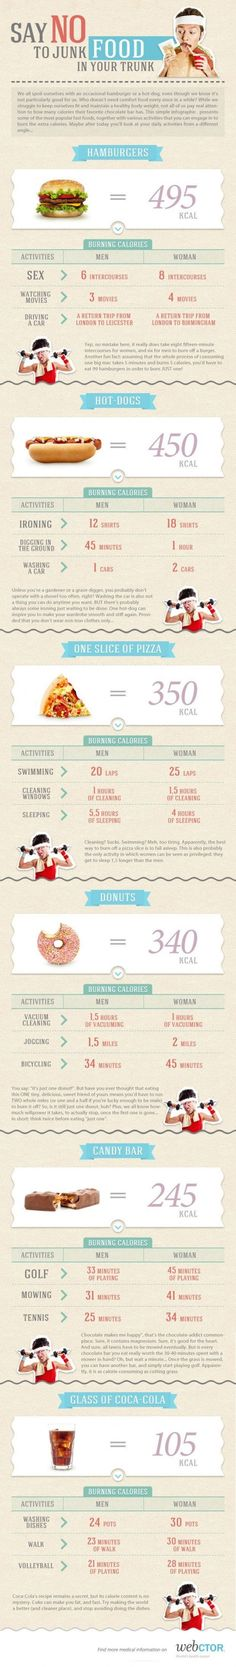 We all spoil ourselves with occasional hamburger or a hot dog, even though we know it's not particularly good for us. This simple infographic presents some of the most popular fast foods, together with various activities that you can engage in to burn the extra calories. Maybe you will start to look at your daily activities from a different angle.